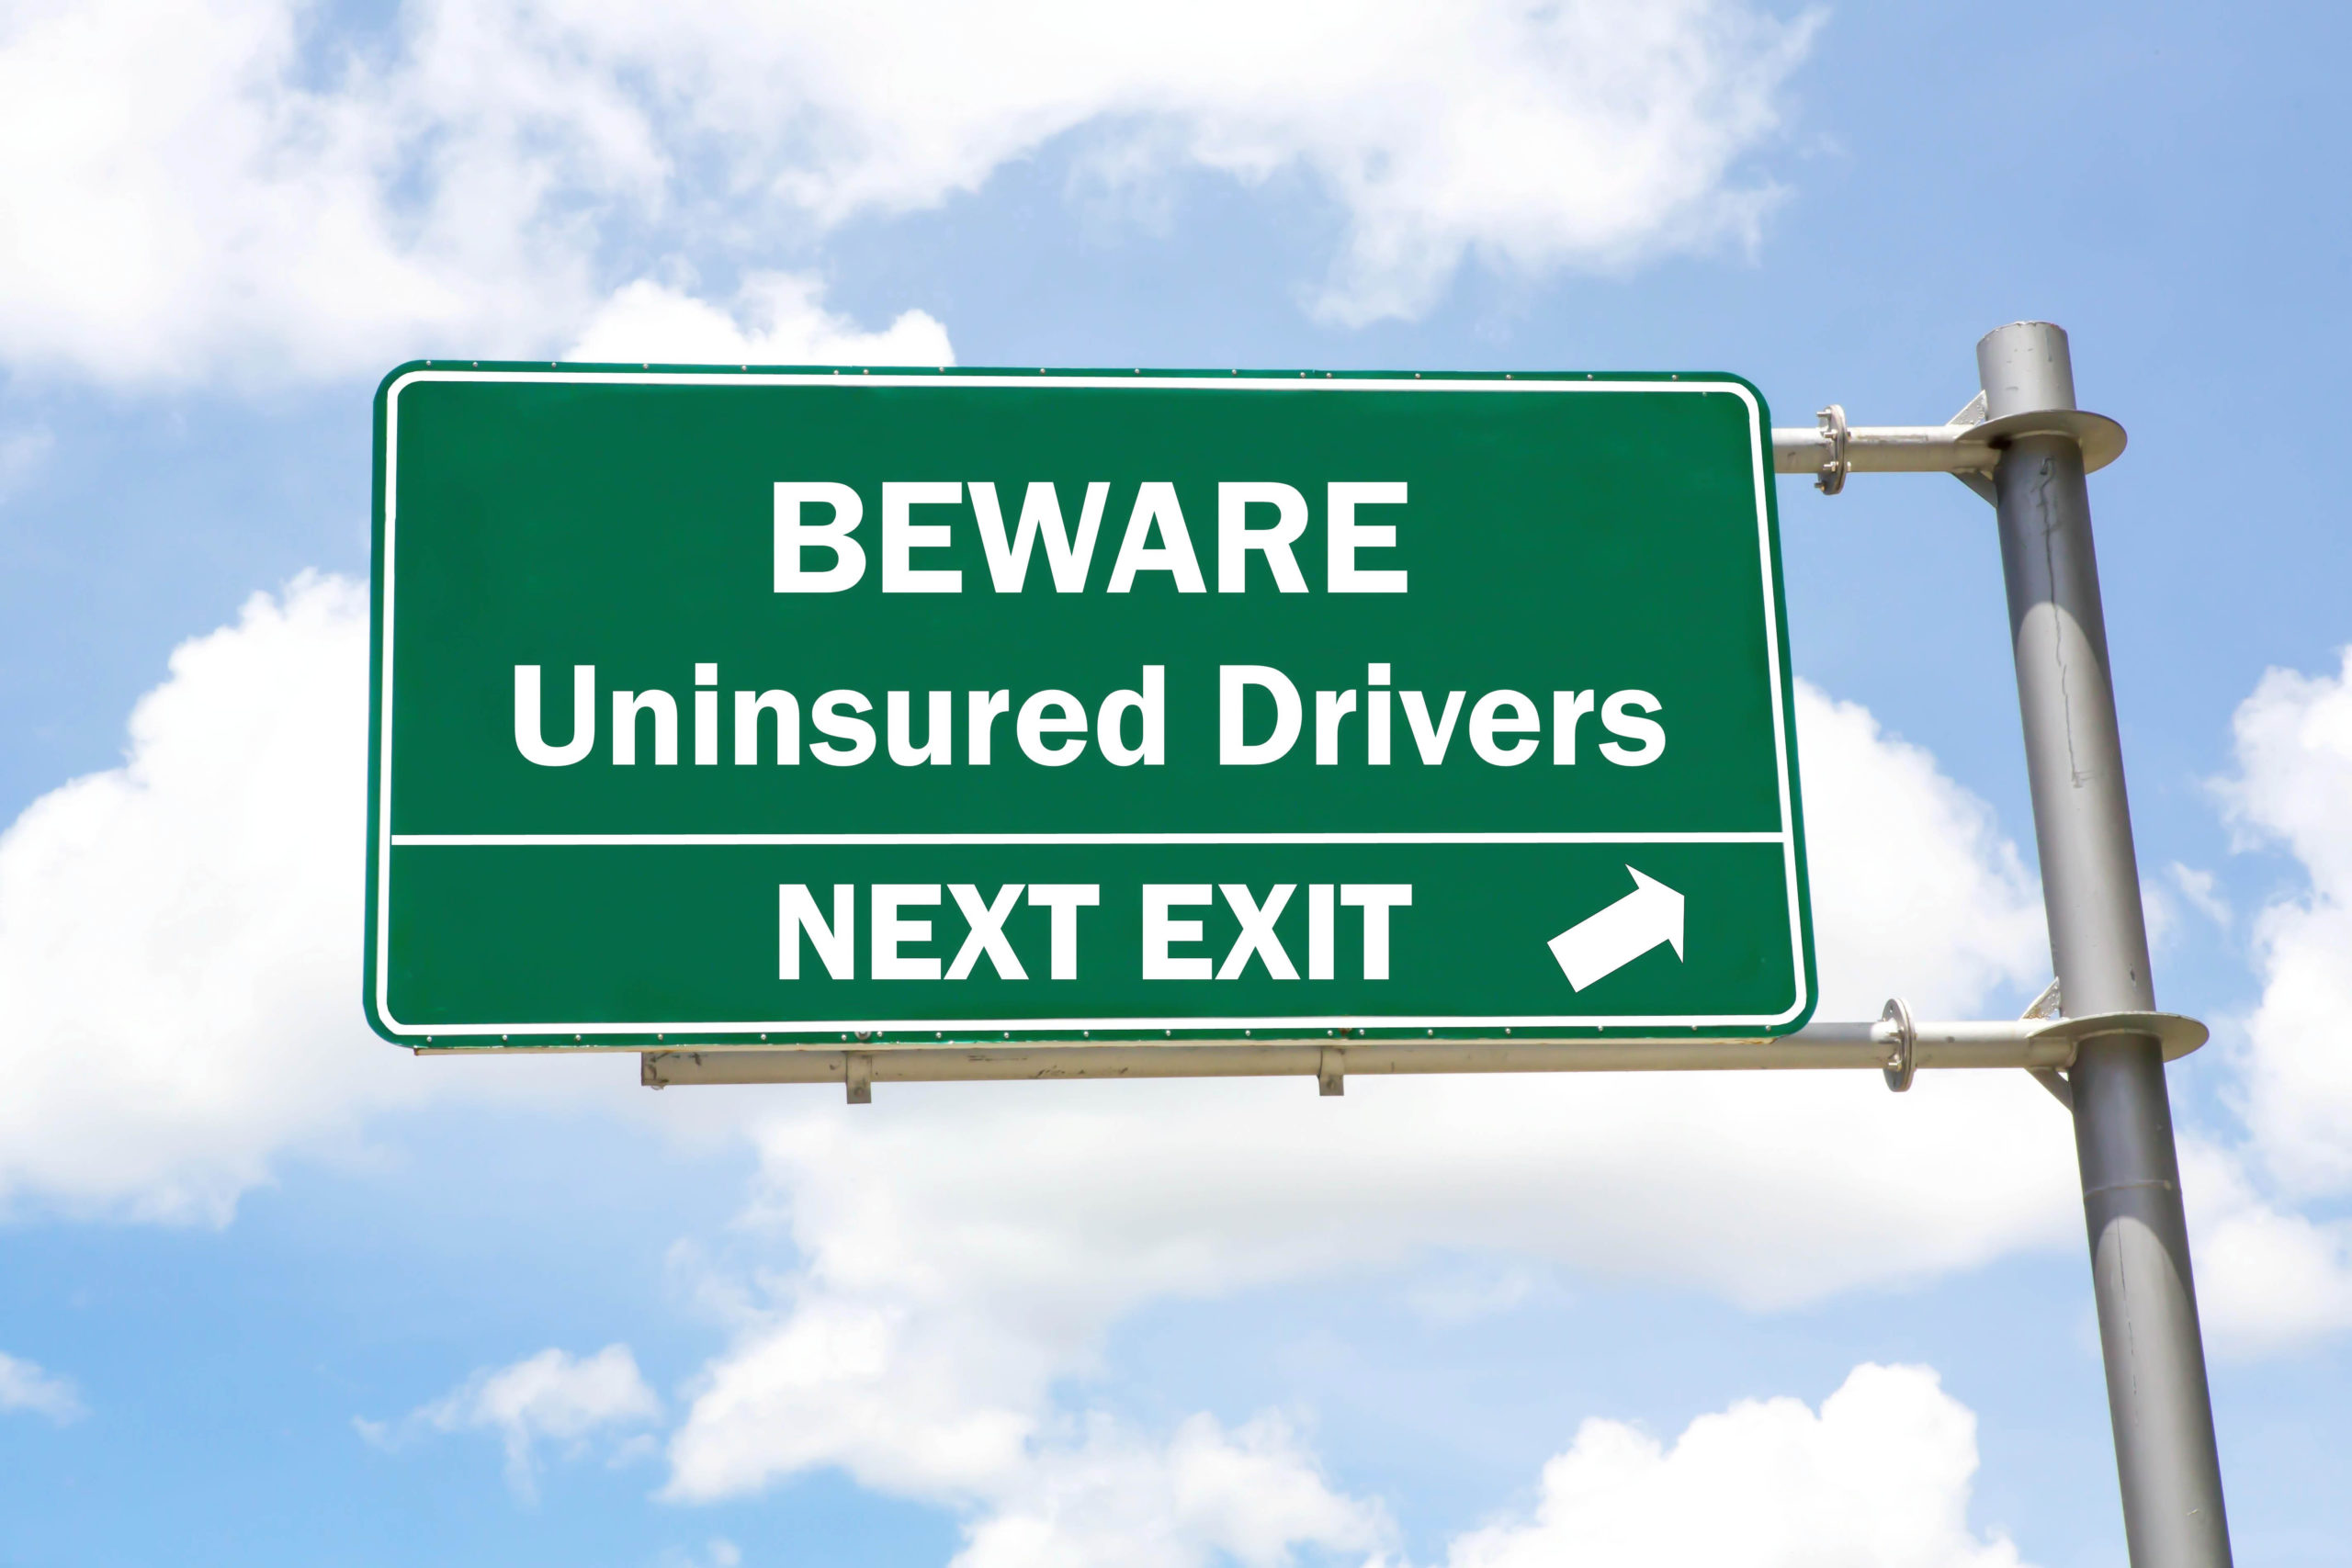 Uninsured Motorist Crashes Might Increase in 2020